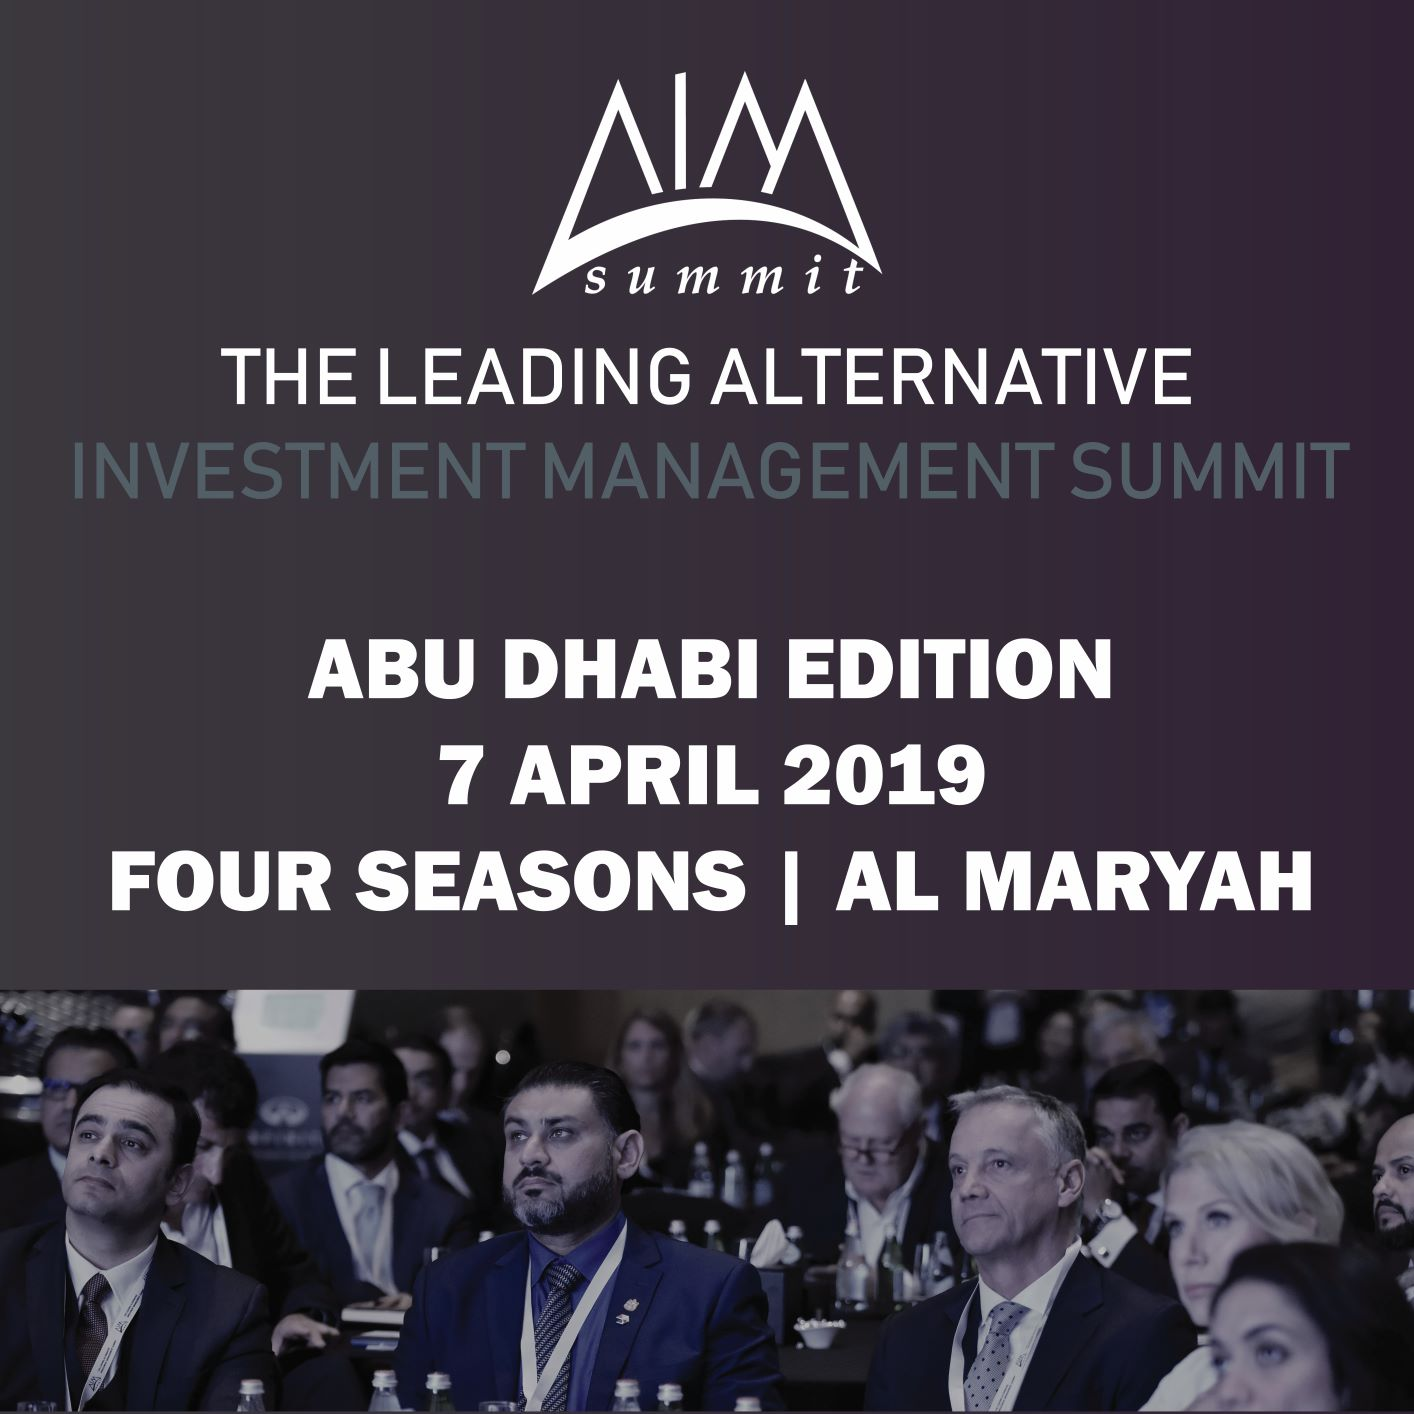 The Leading Alternative Investment Management Summit organized by AIM Summit